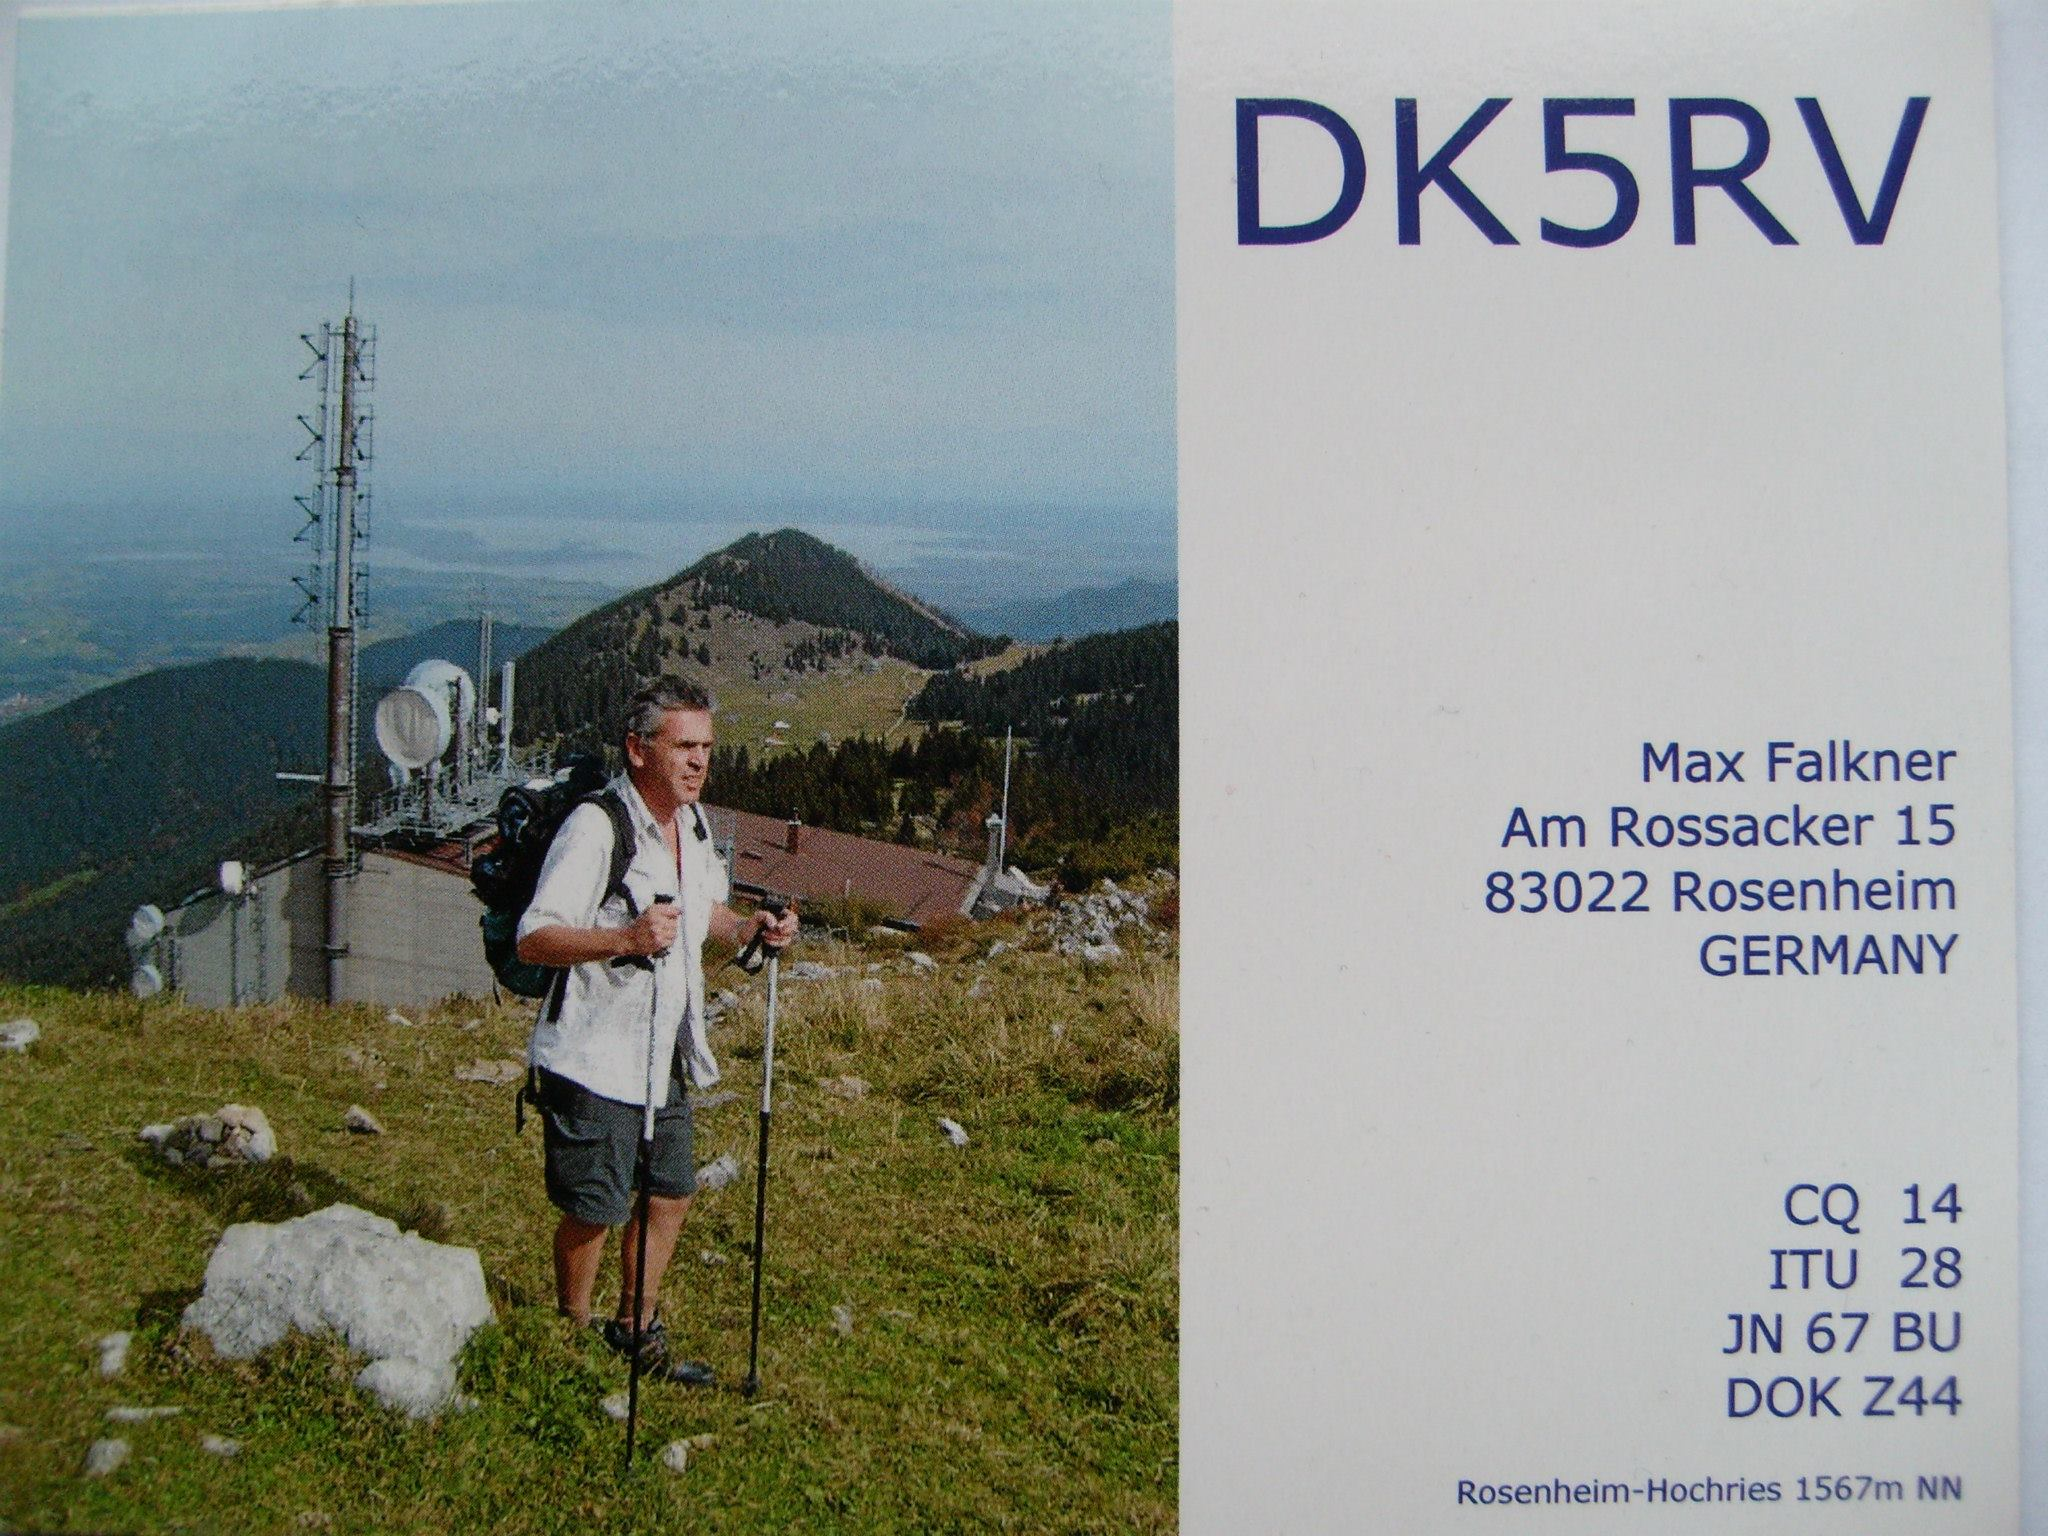 QSL image for DK5RV